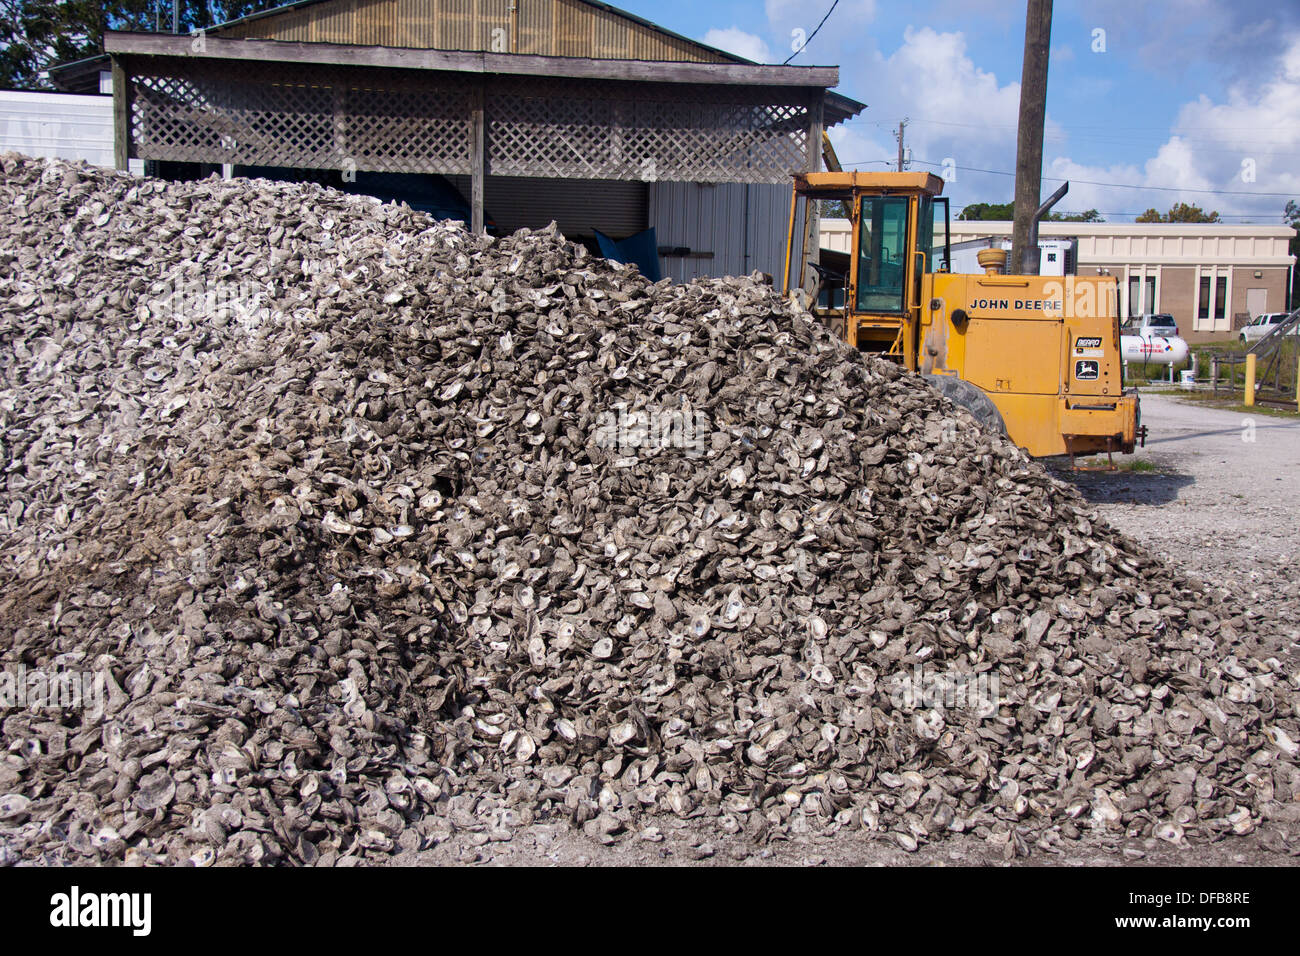 Oyster shells at a processing plant in Apalachicola, Florida - Stock Image